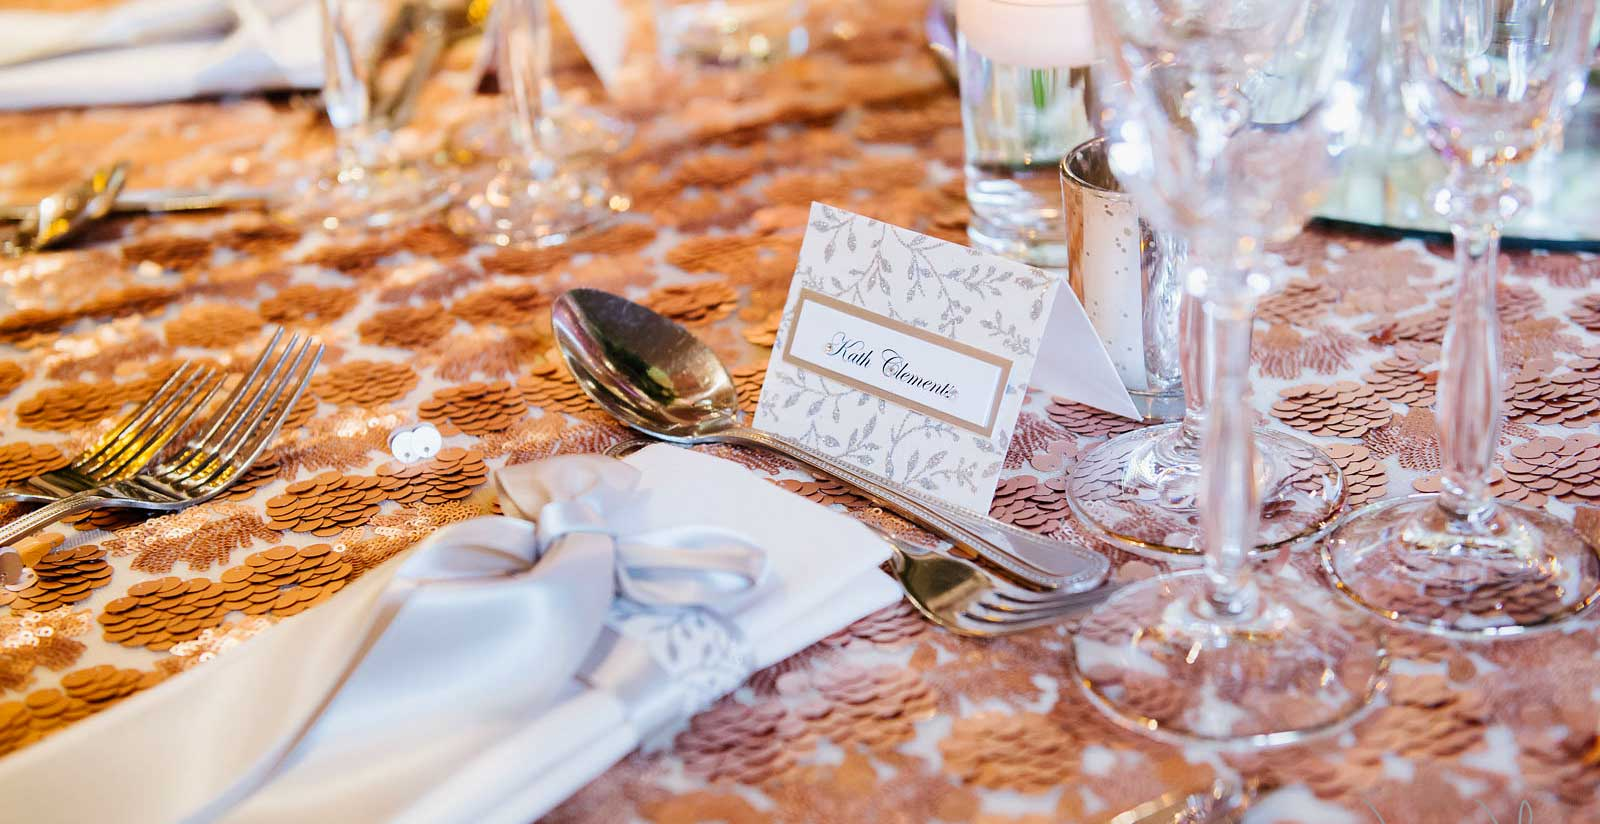 Silver leaf sparkle name place card & satin bow with lace napkin dressing